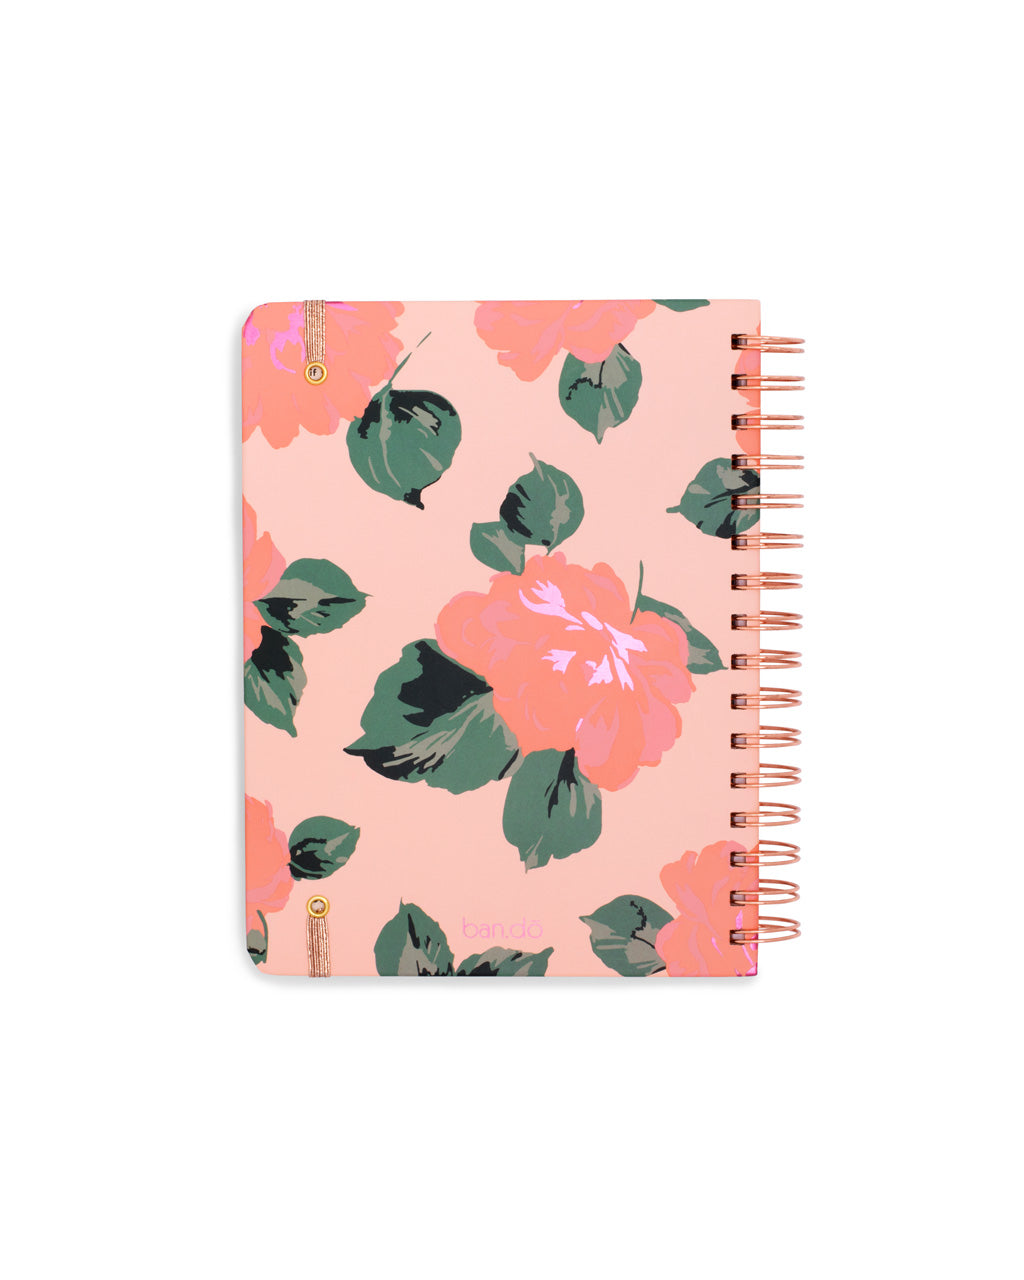 2019 Medium 12-Month Annual Planner - Bellini